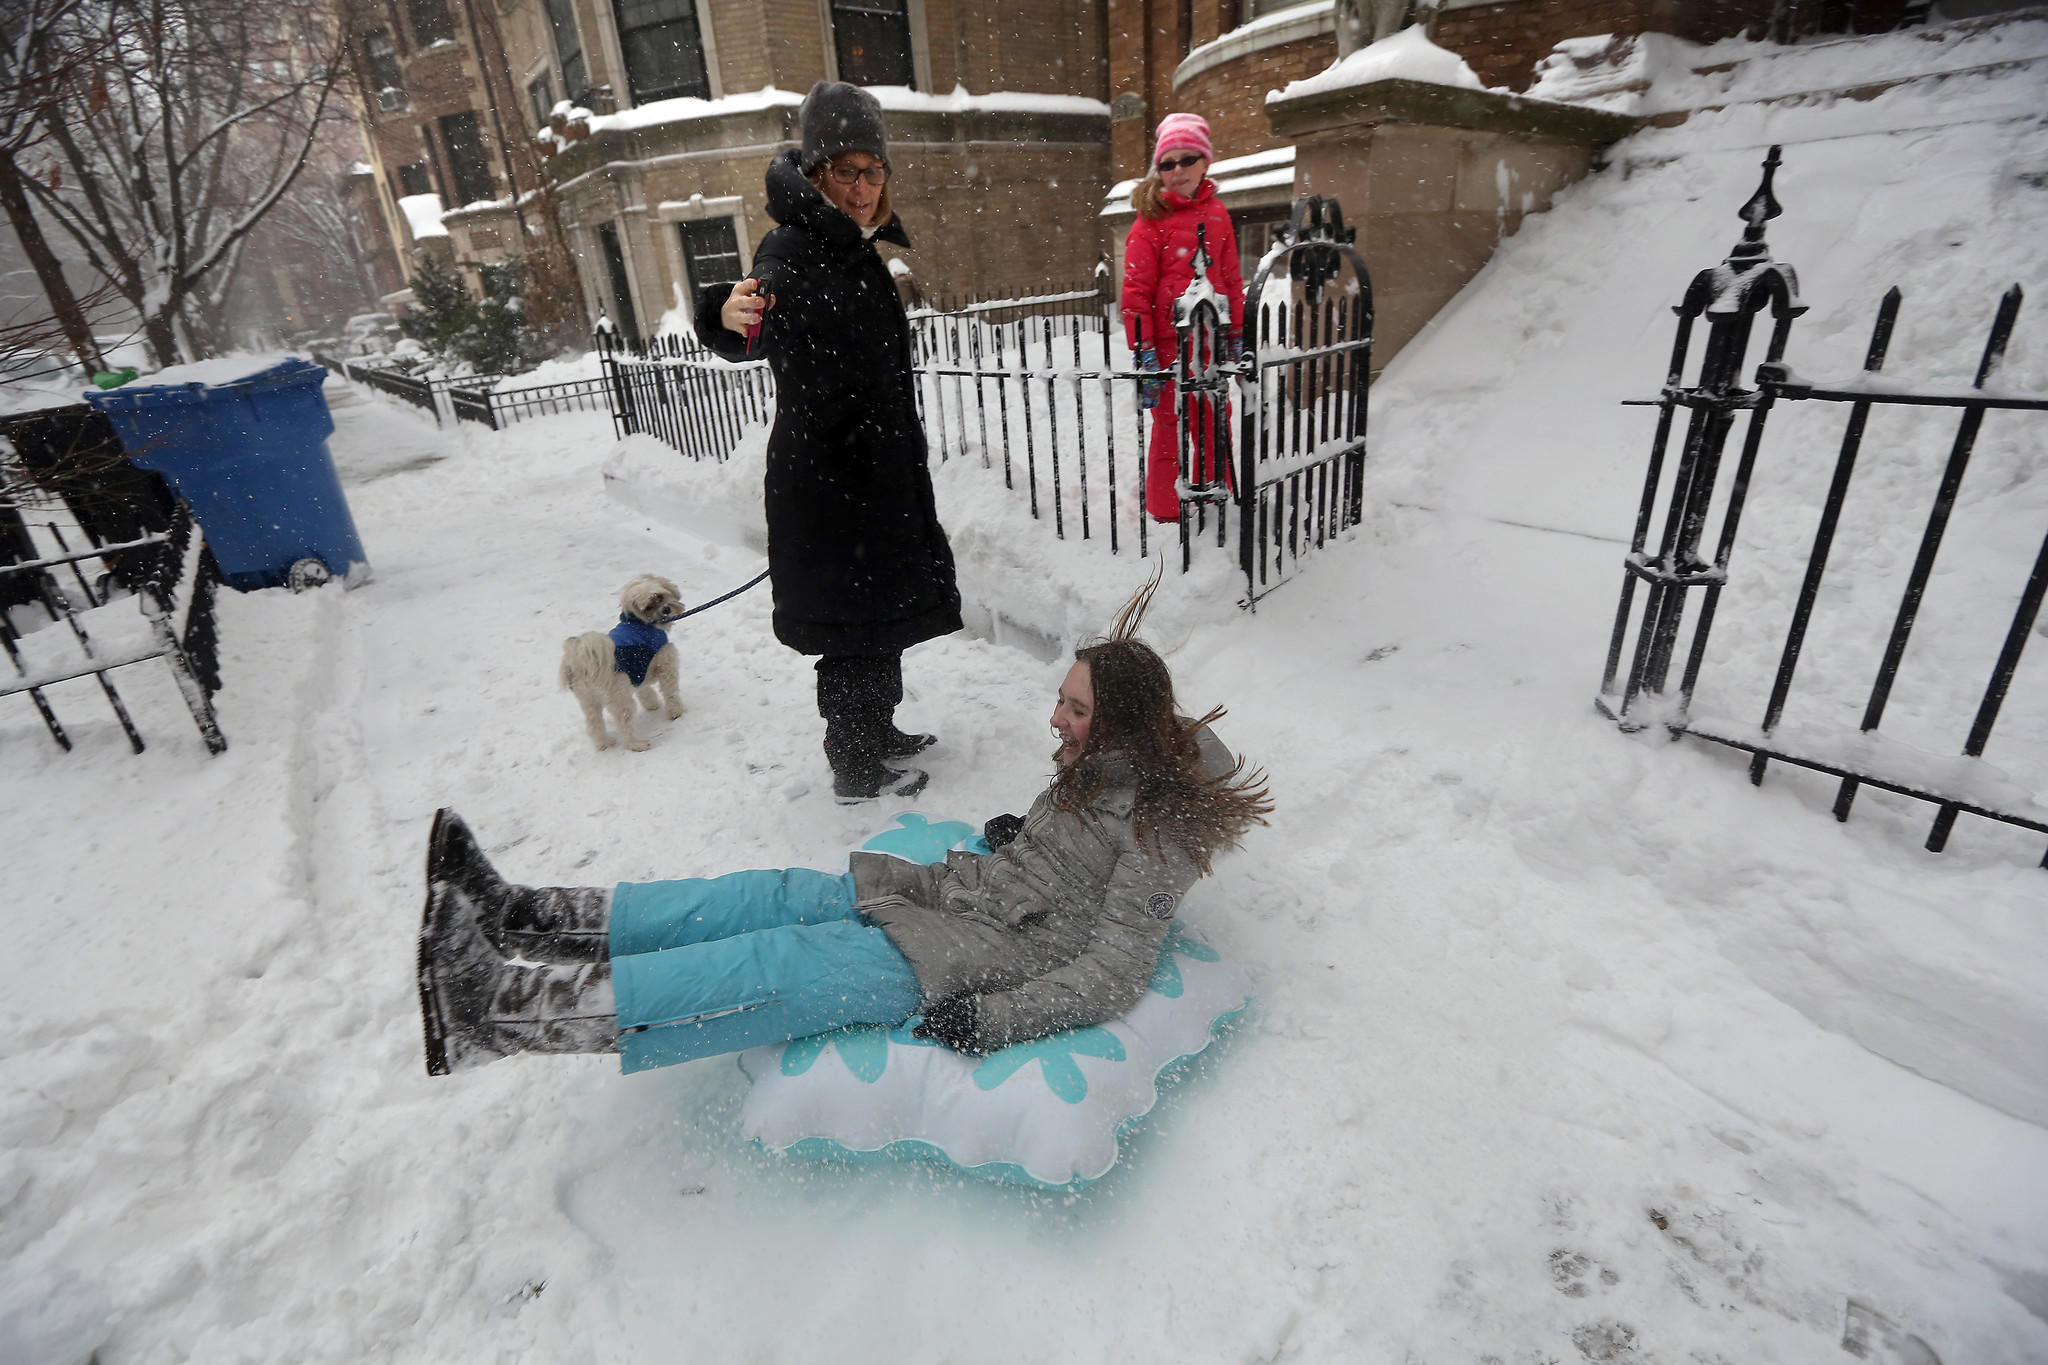 Jen O'Brien and her daughter Sydney, back, watch as her other daughter Samantha, 12, sleds down the front steps.